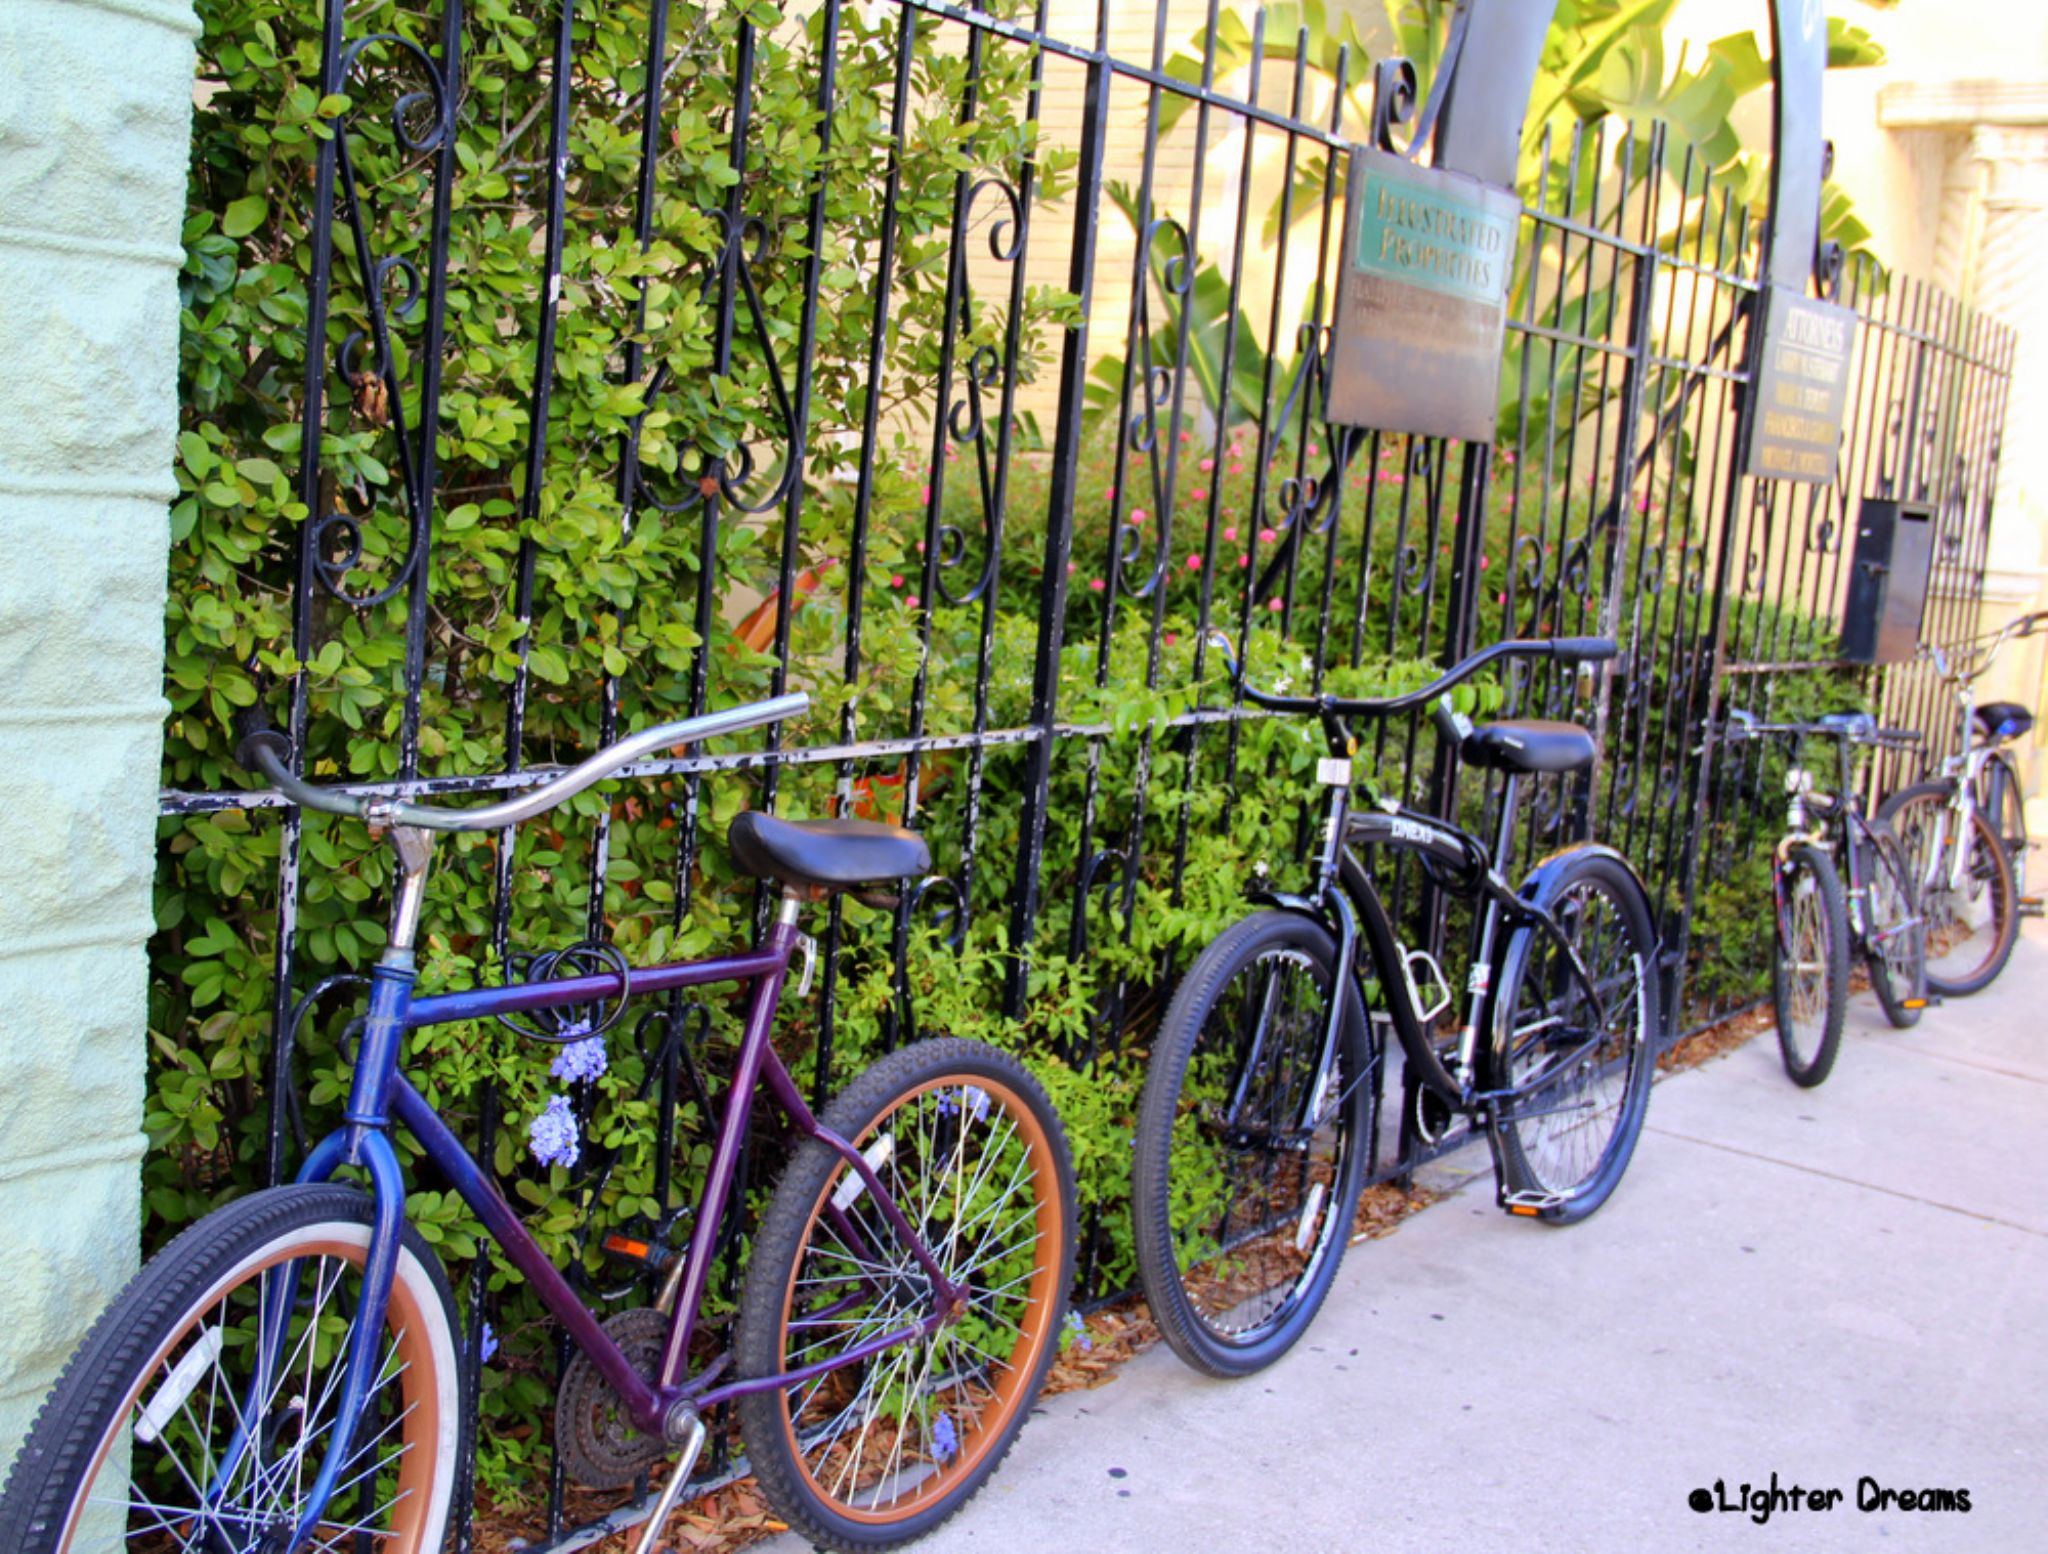 Bicycles by LighterDreams